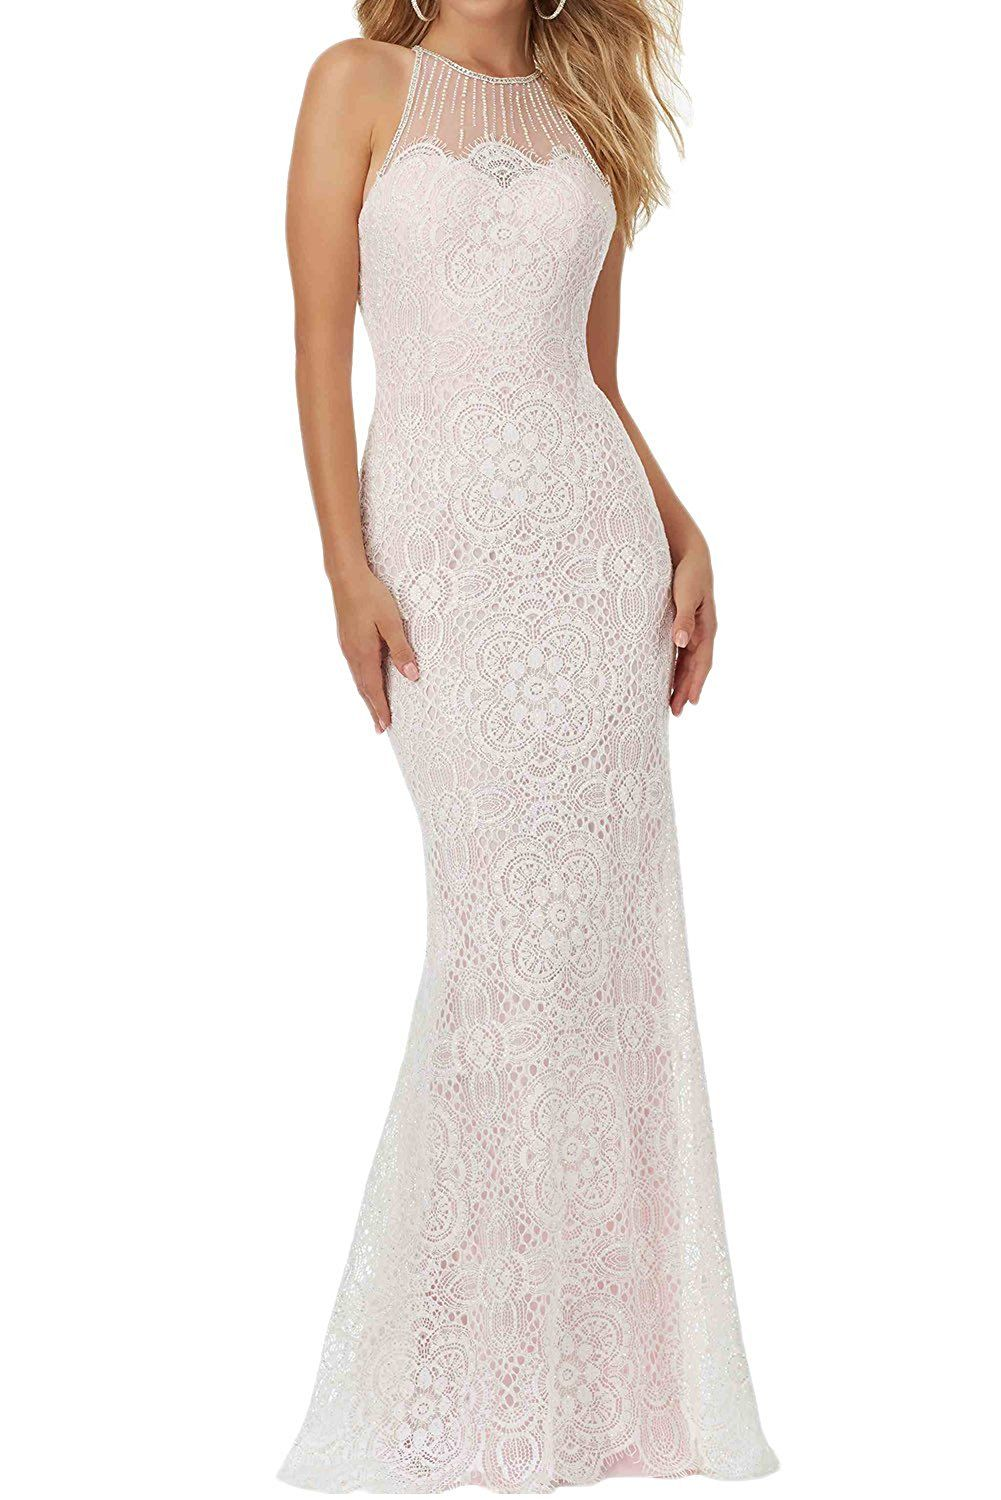 Limitless white lace halter mermaid dress for women prom evening